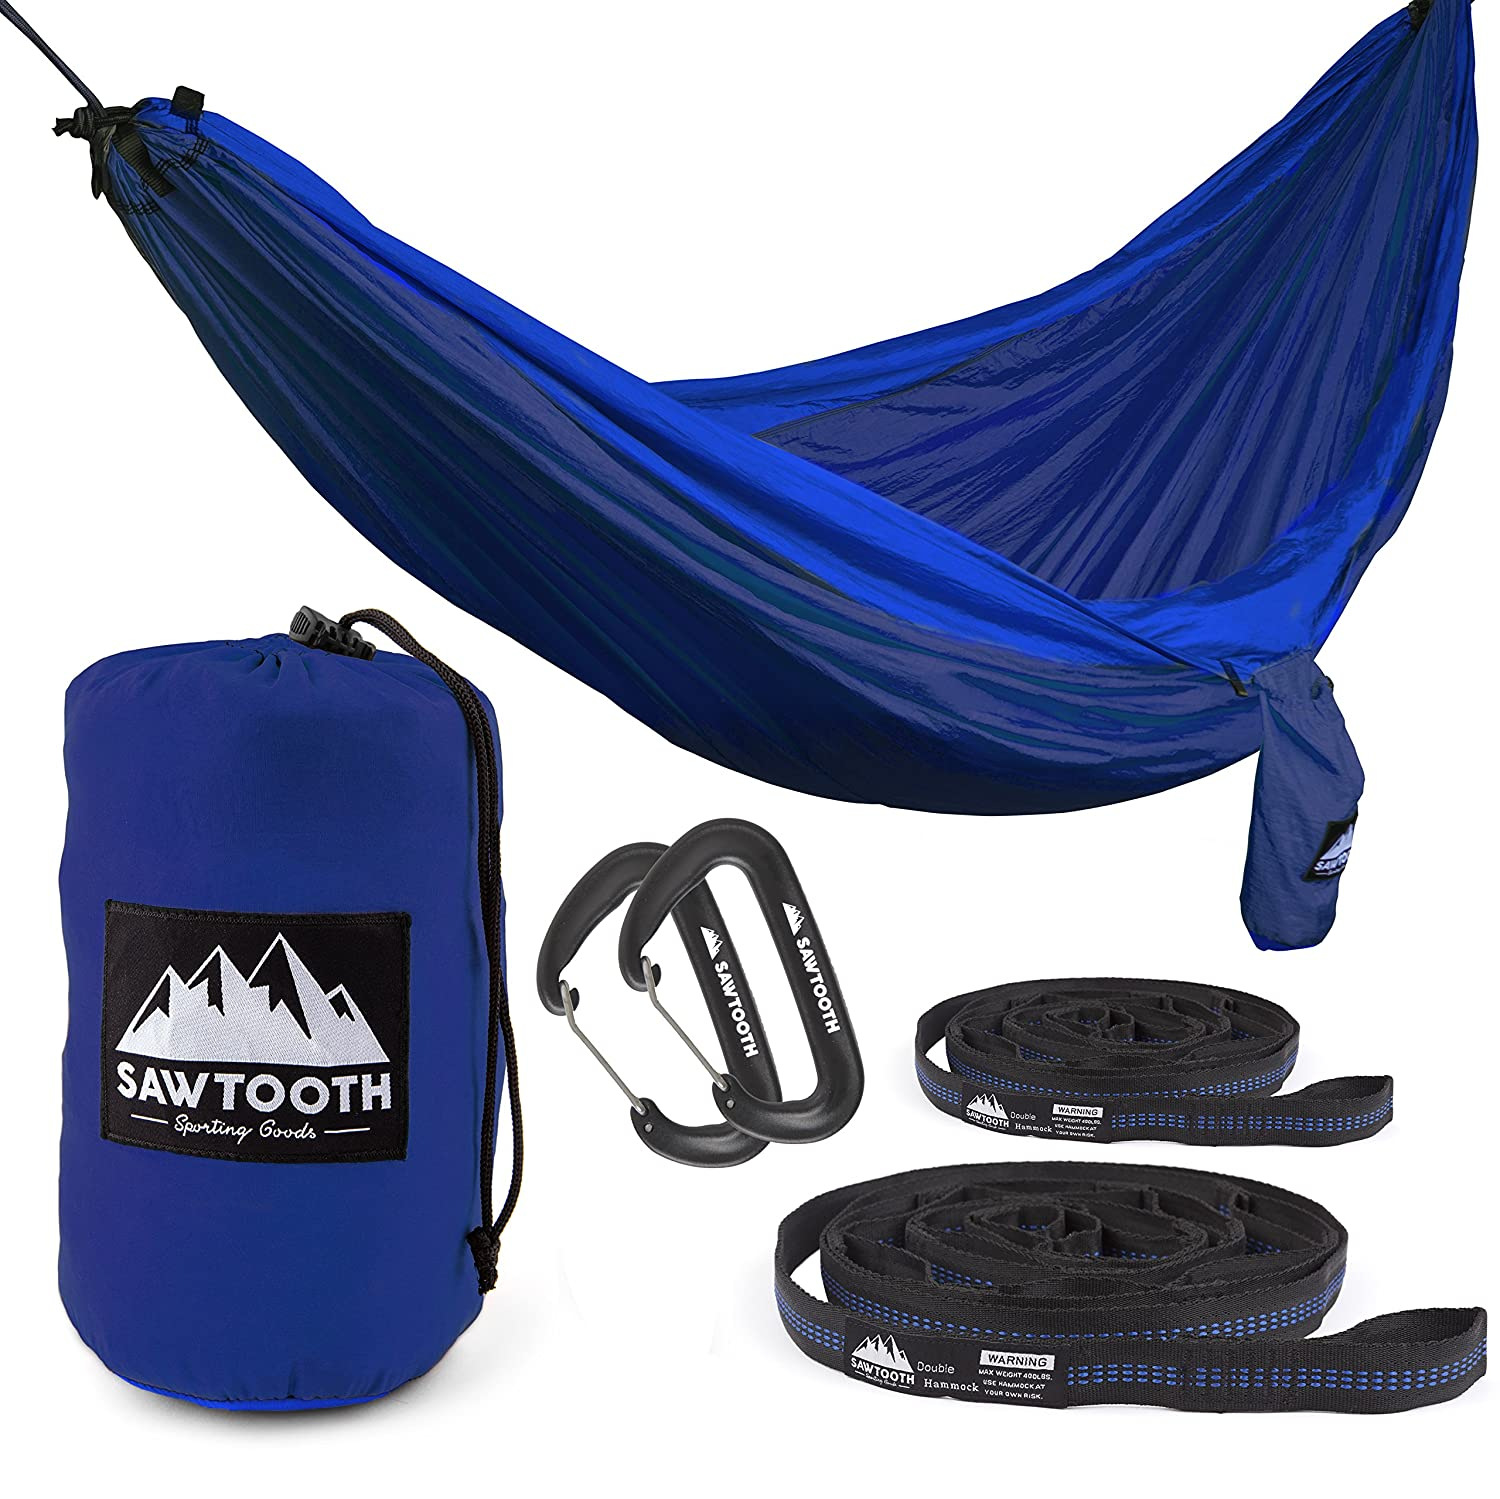 Sawtooth Double Camping Hammock with Tree Straps and Aluminum Carabiners – Complete KIT – Lightweight Portable Parachute Nylon for Backpacking Hiking Travel Beach Park Yard.